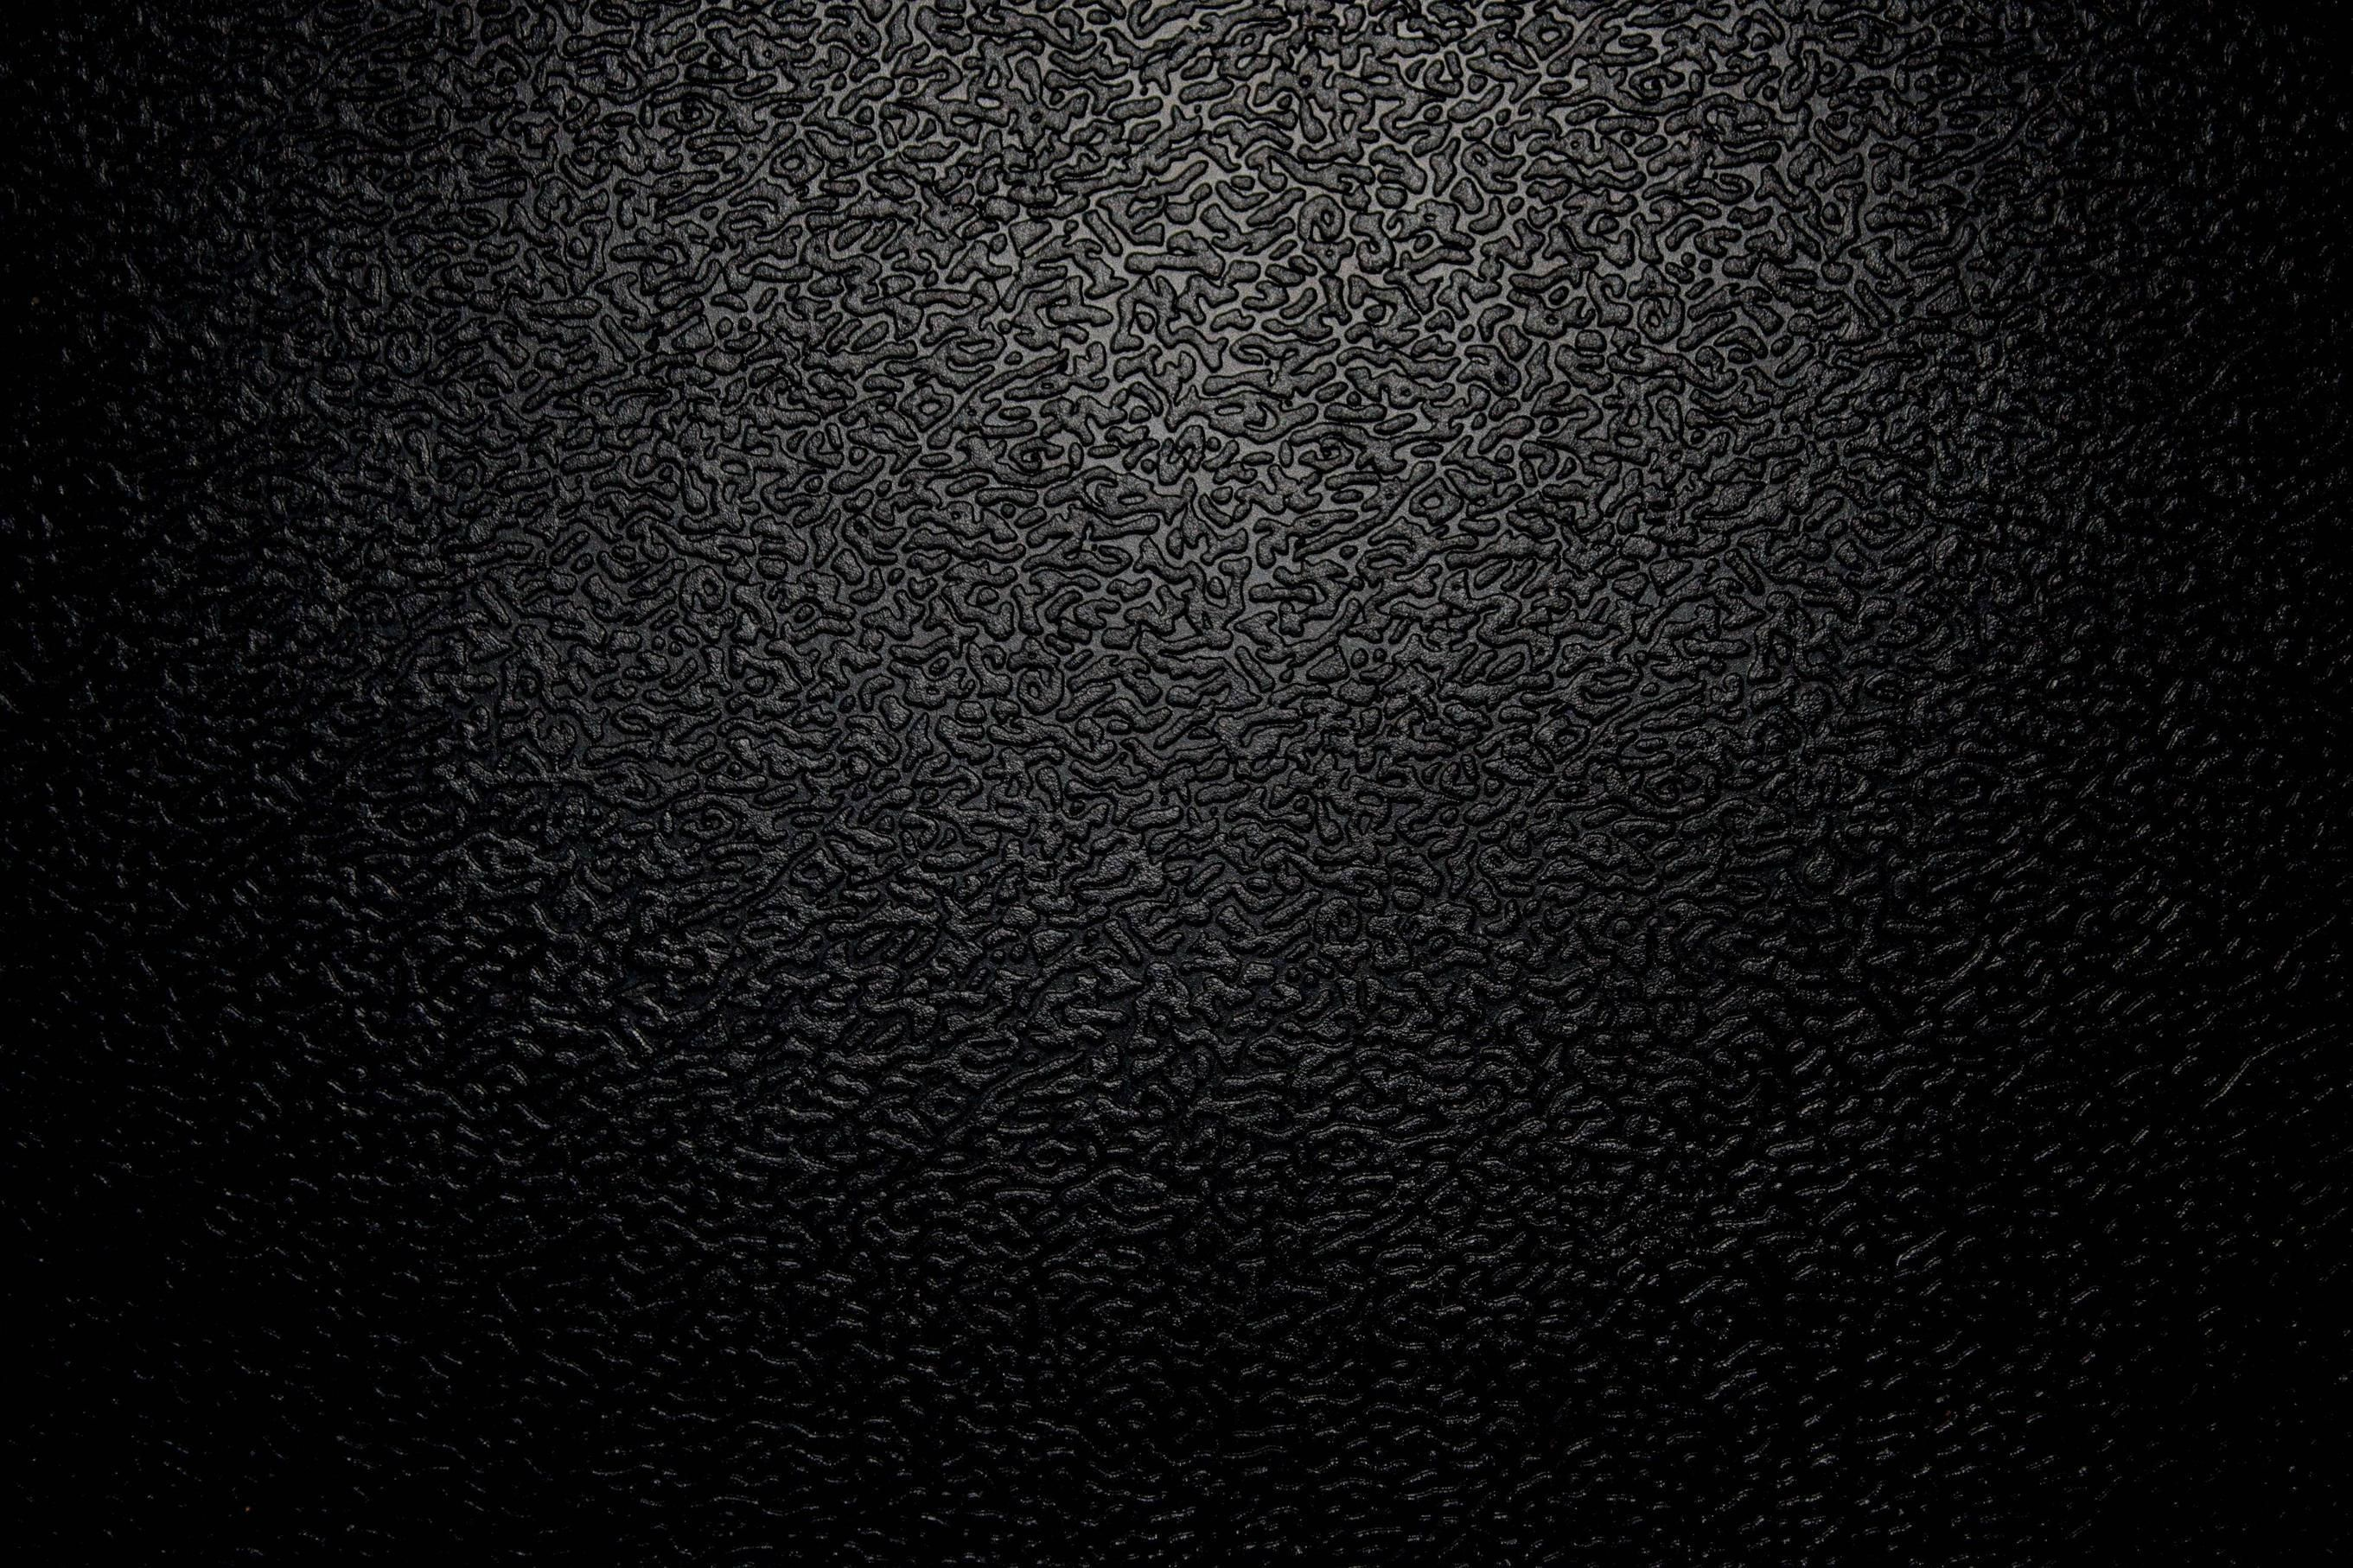 Black And White Textured Wallpaper 8 Textured Wallpaper Hd Free Black Textured Wallpaper Black Phone Wallpaper Solid Black Wallpaper